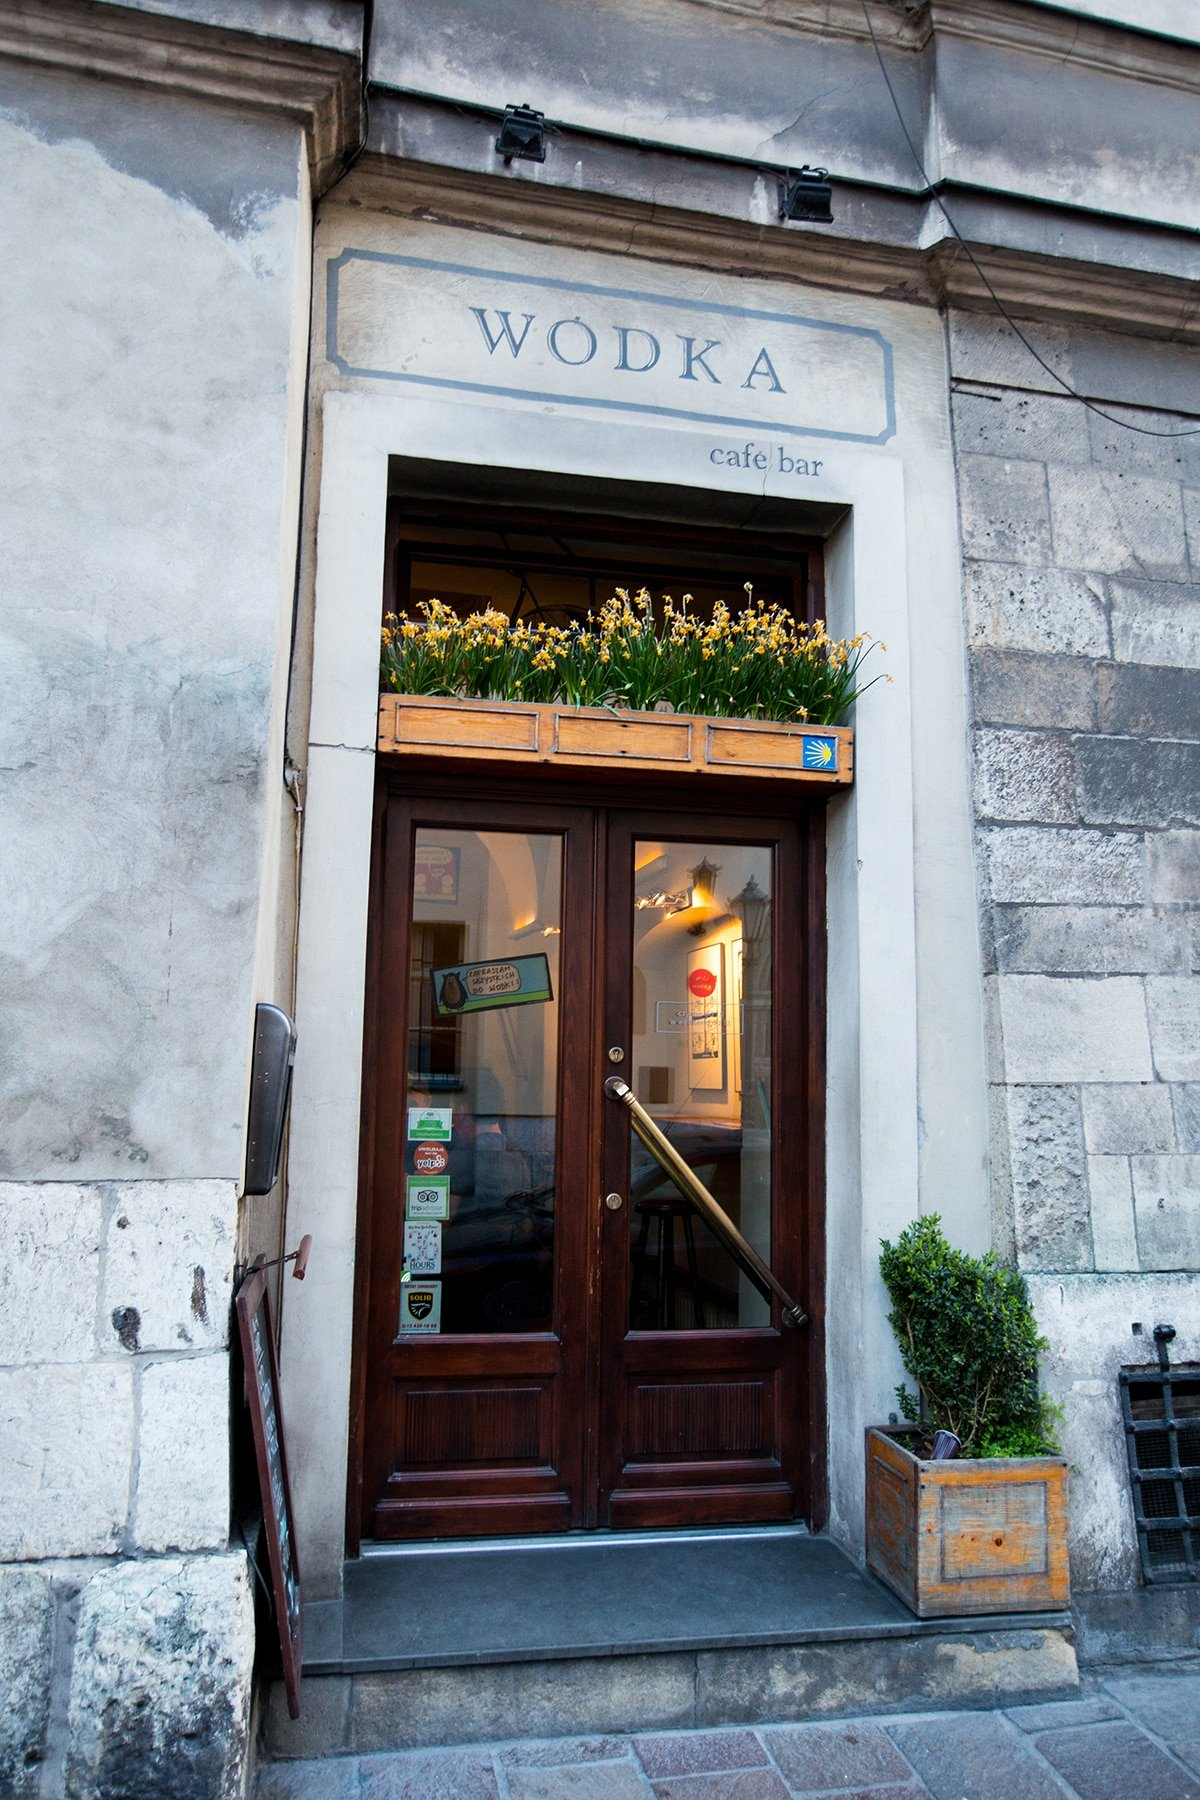 The best vodka bar in krakow- so many delicious flavors to try and so inexpensive!